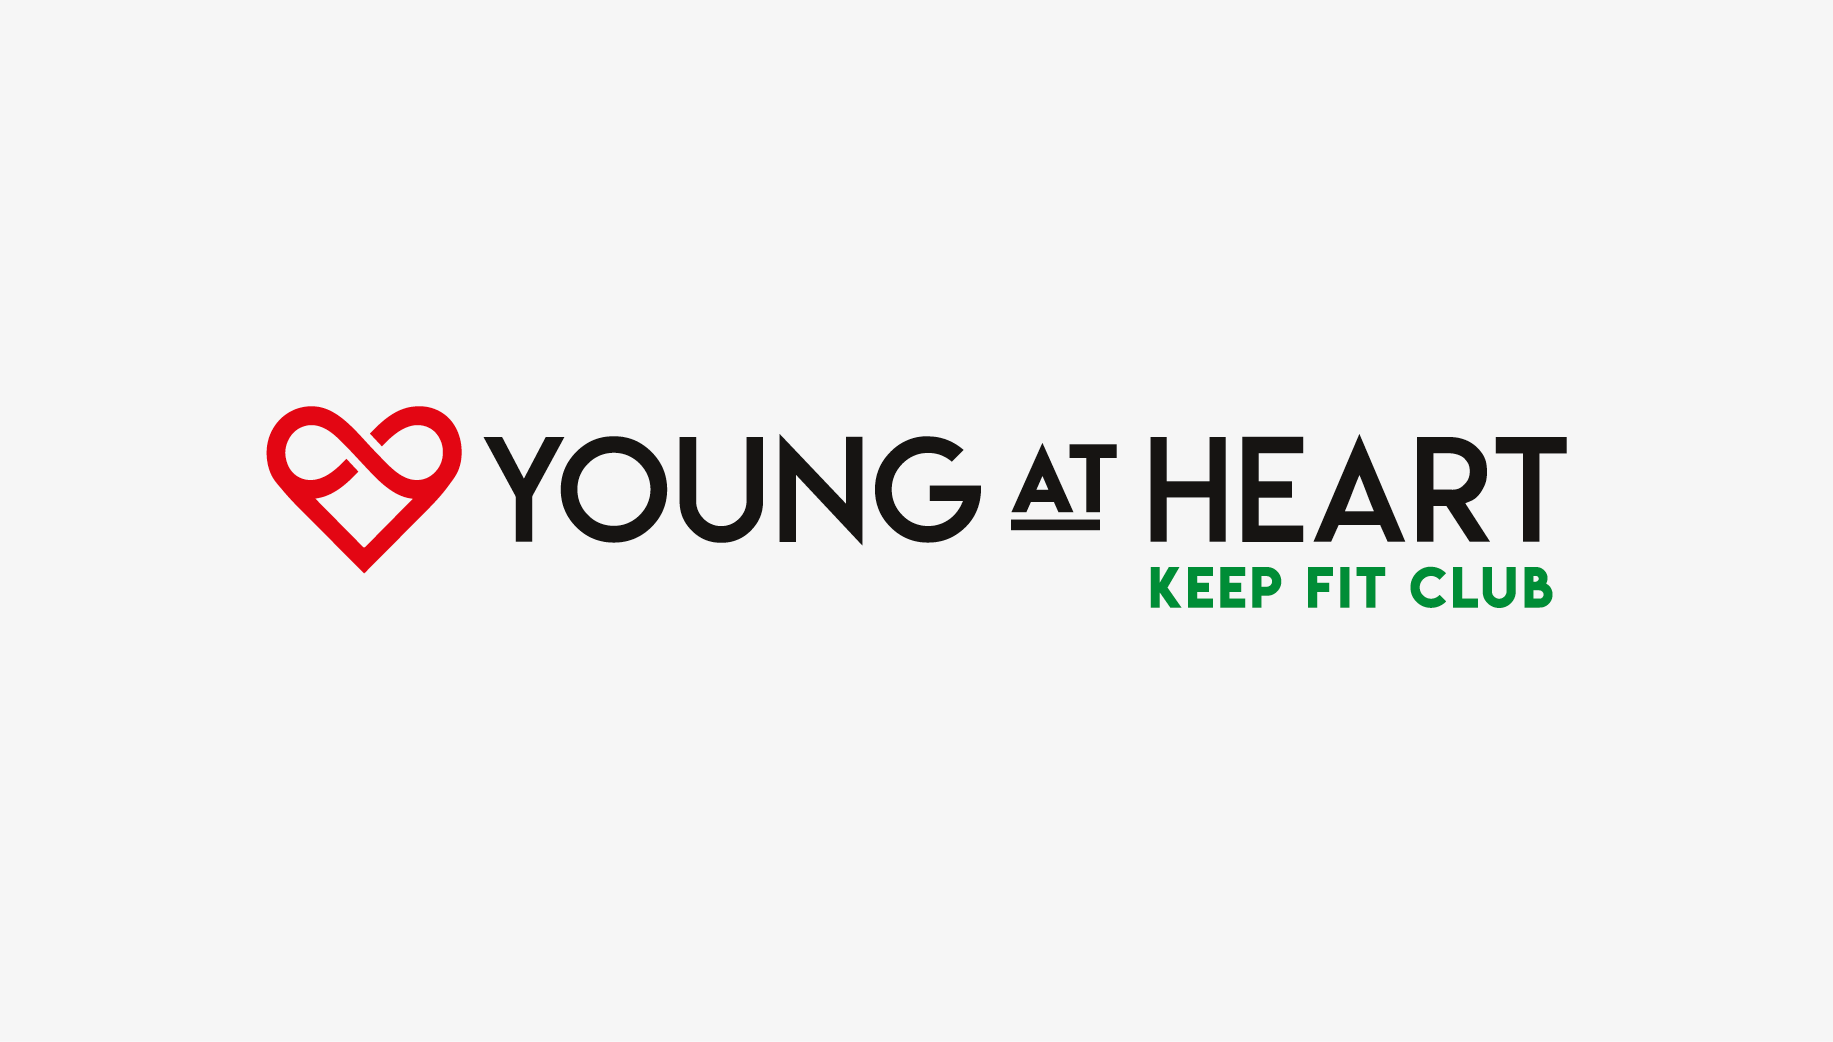 Young At Heart Keep Fit Club logo